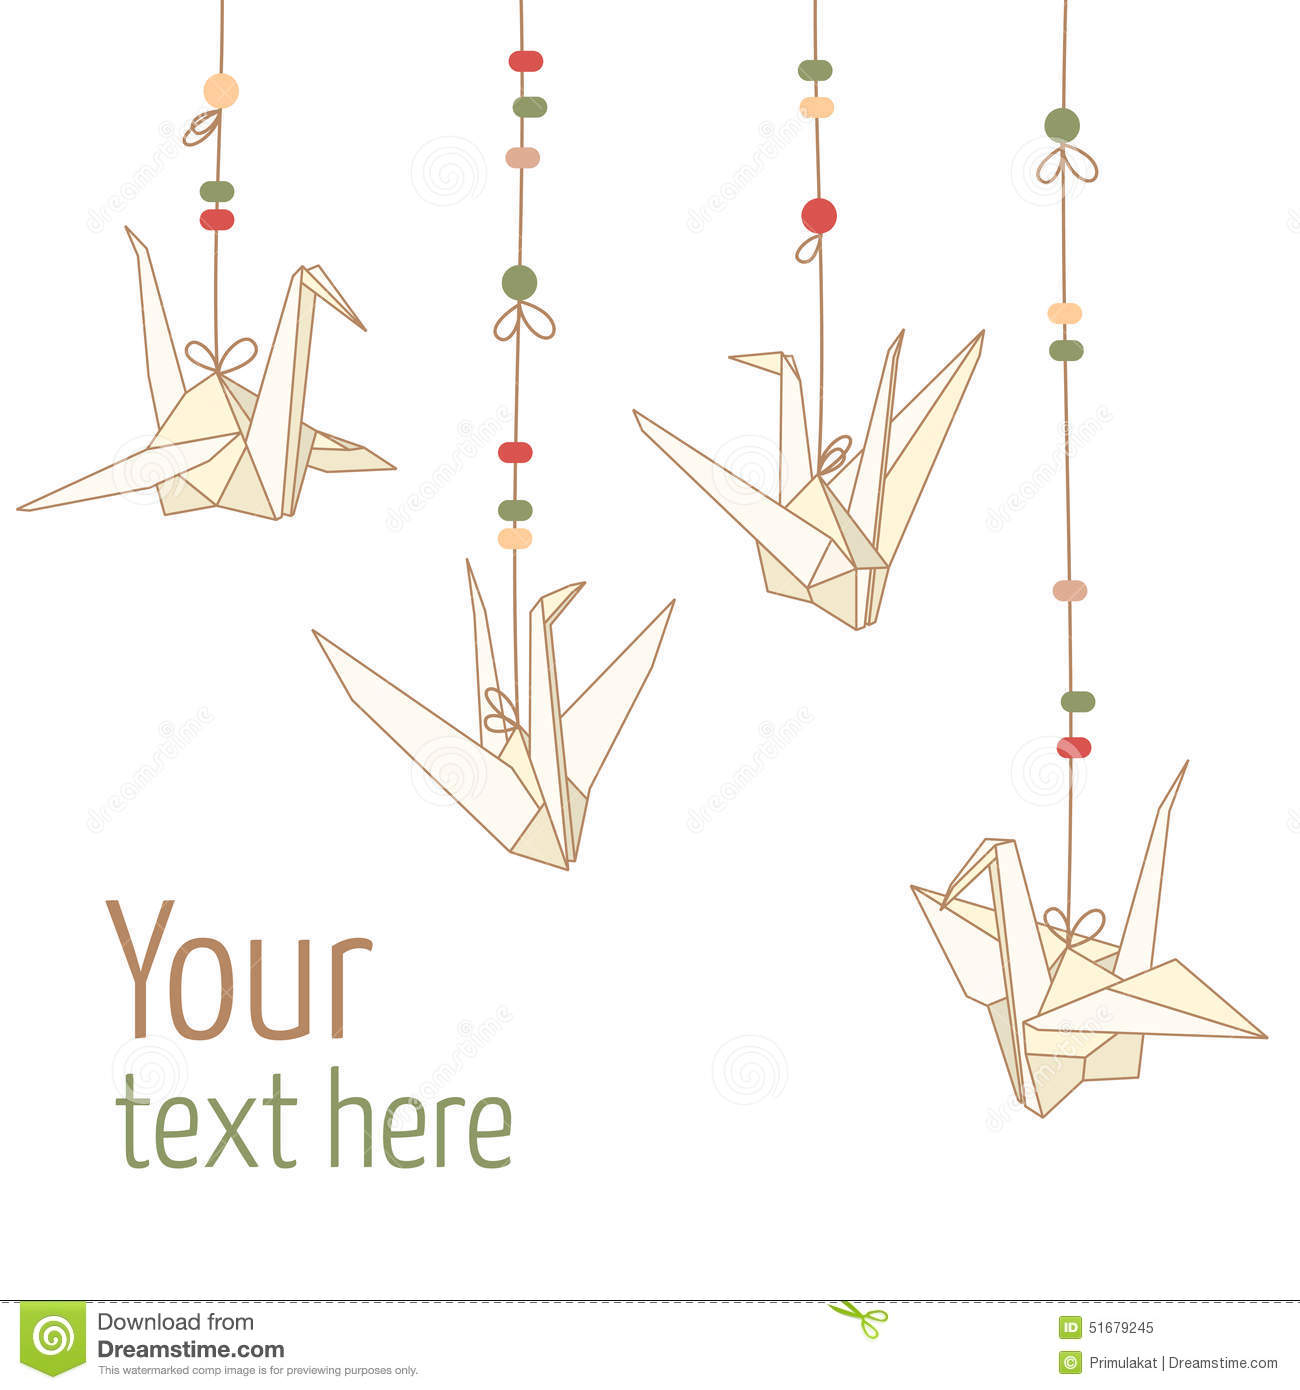 Download Vector Isolated Of Hanging Origami Paper Cranes Stock